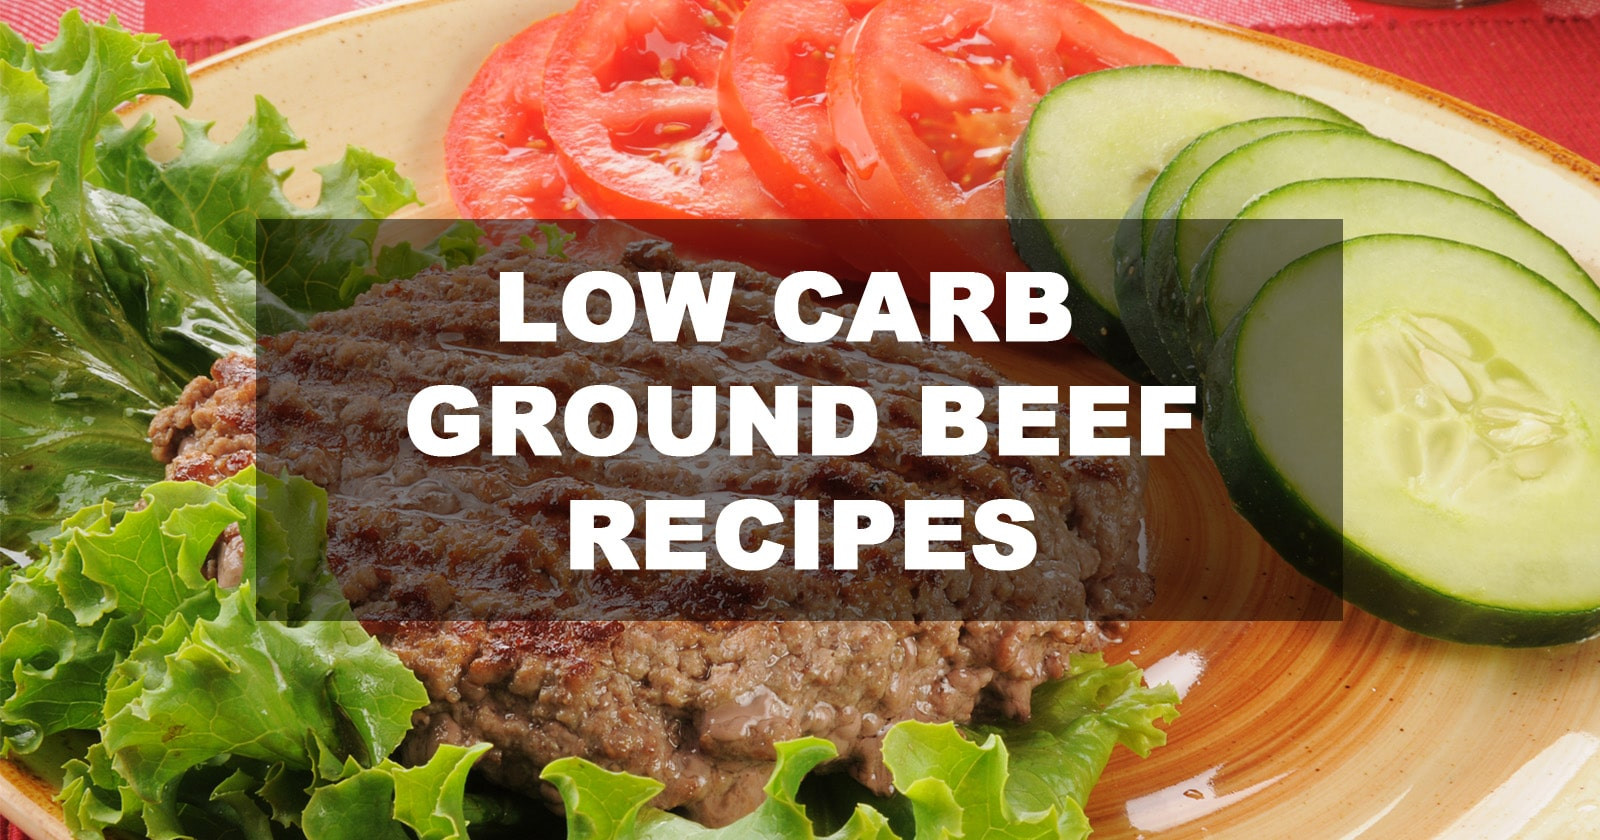 Low Carb Venison Recipes  Best Low Carb Ground Beef Recipes October 2018